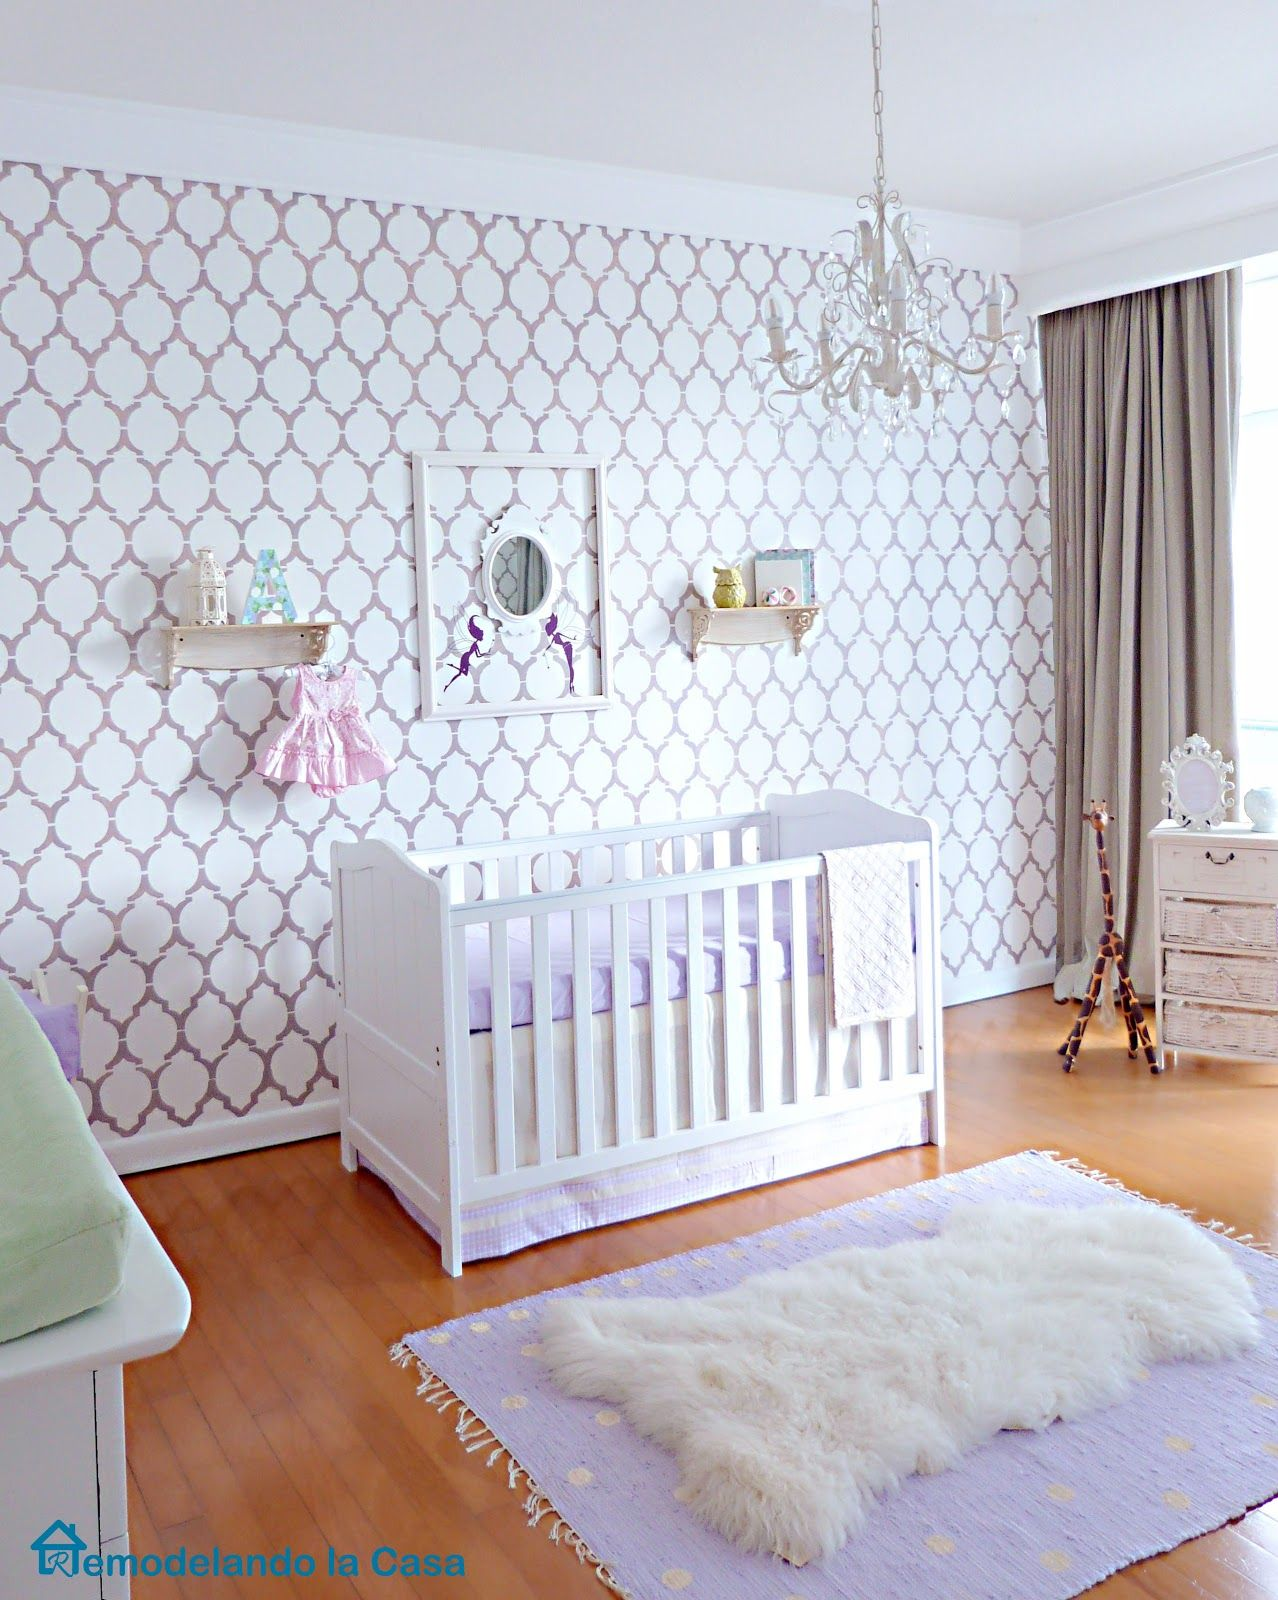 Antonias stylish nursery stylish baby girls nursery and babies antonias stylish nursery amipublicfo Images